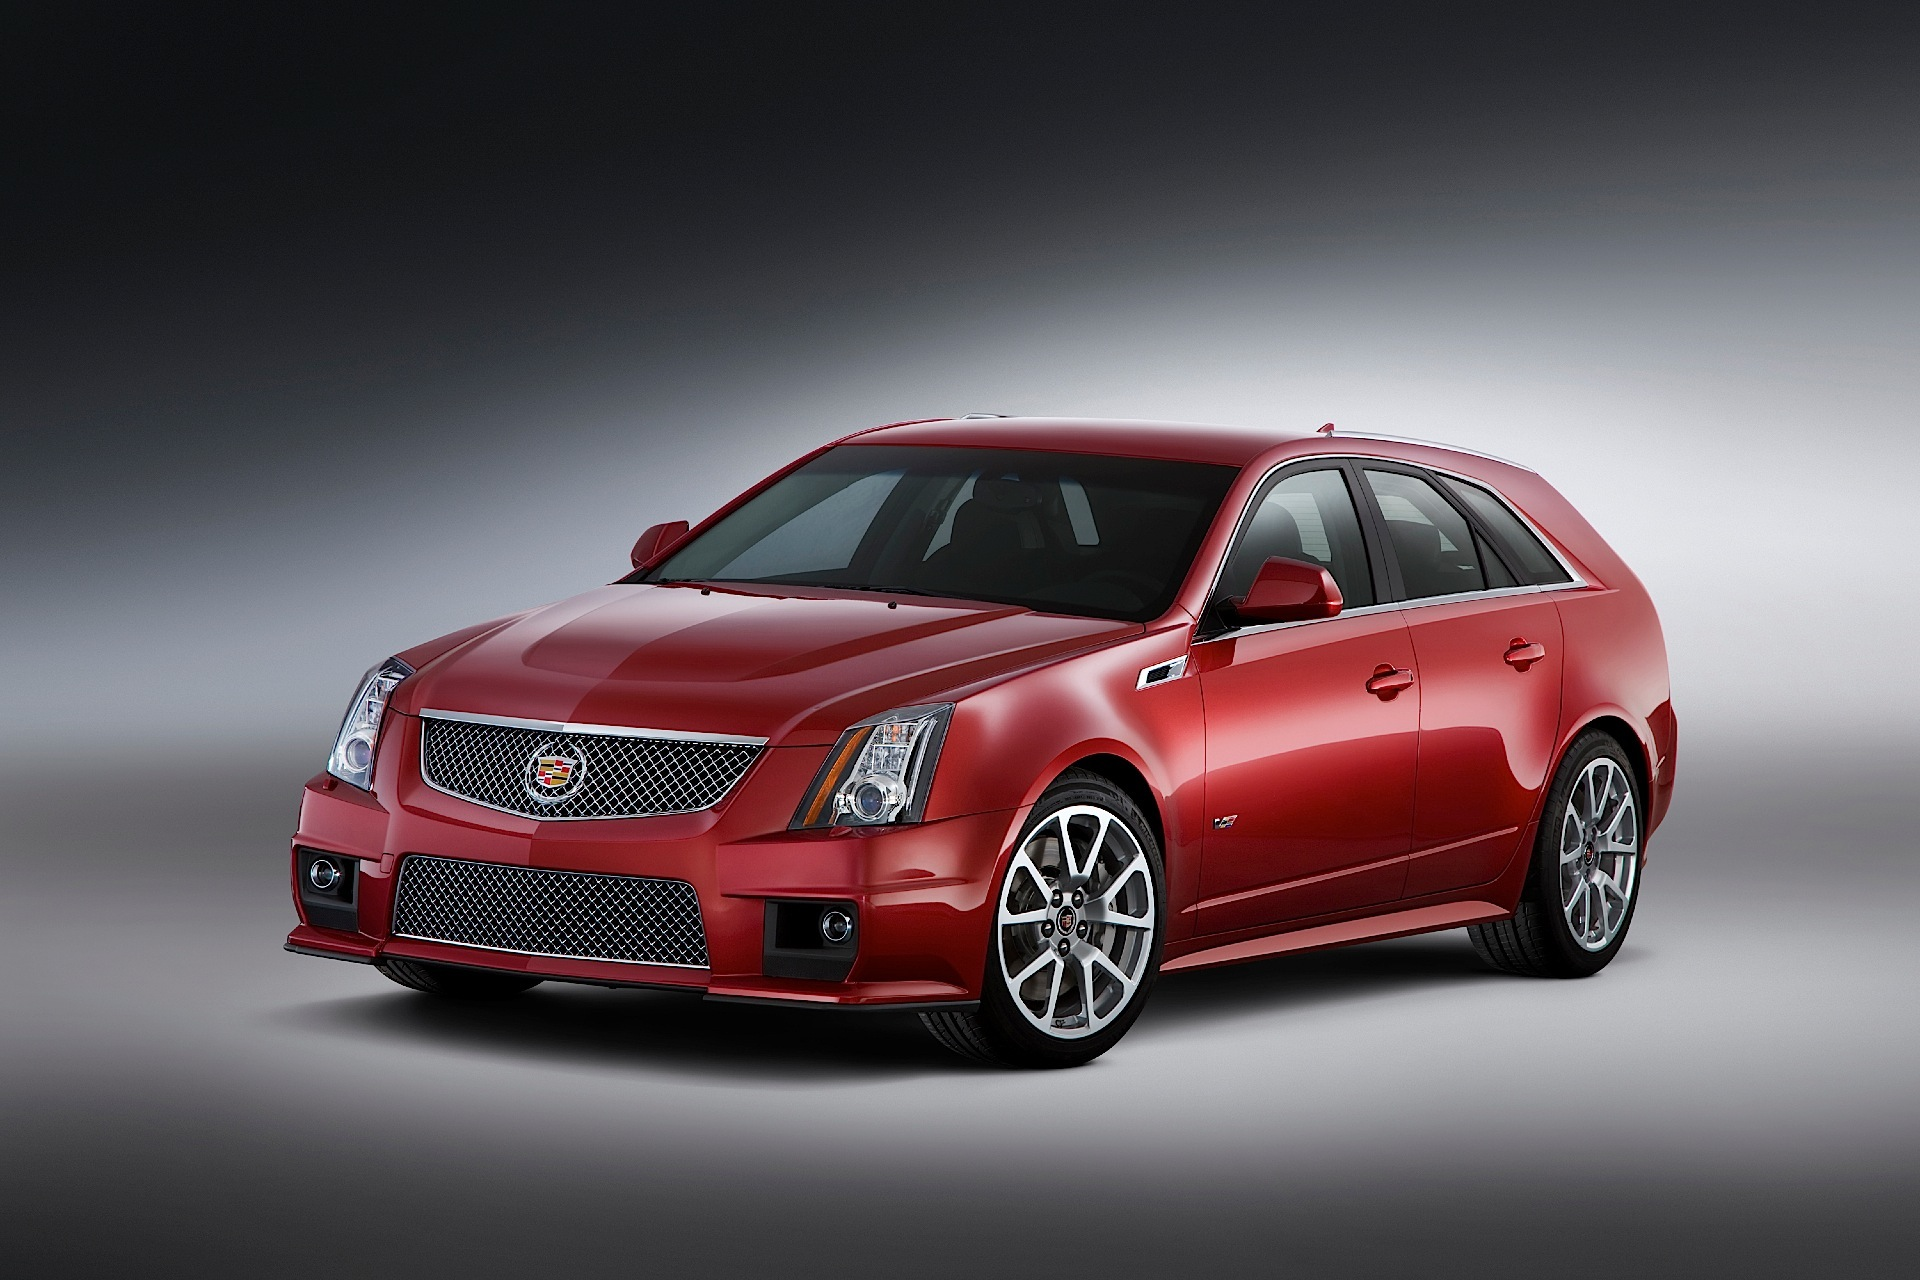 cadillac cts v sport wagon specs 2010 2011 2012 2013 2014 2015 2016 2017 2018. Black Bedroom Furniture Sets. Home Design Ideas